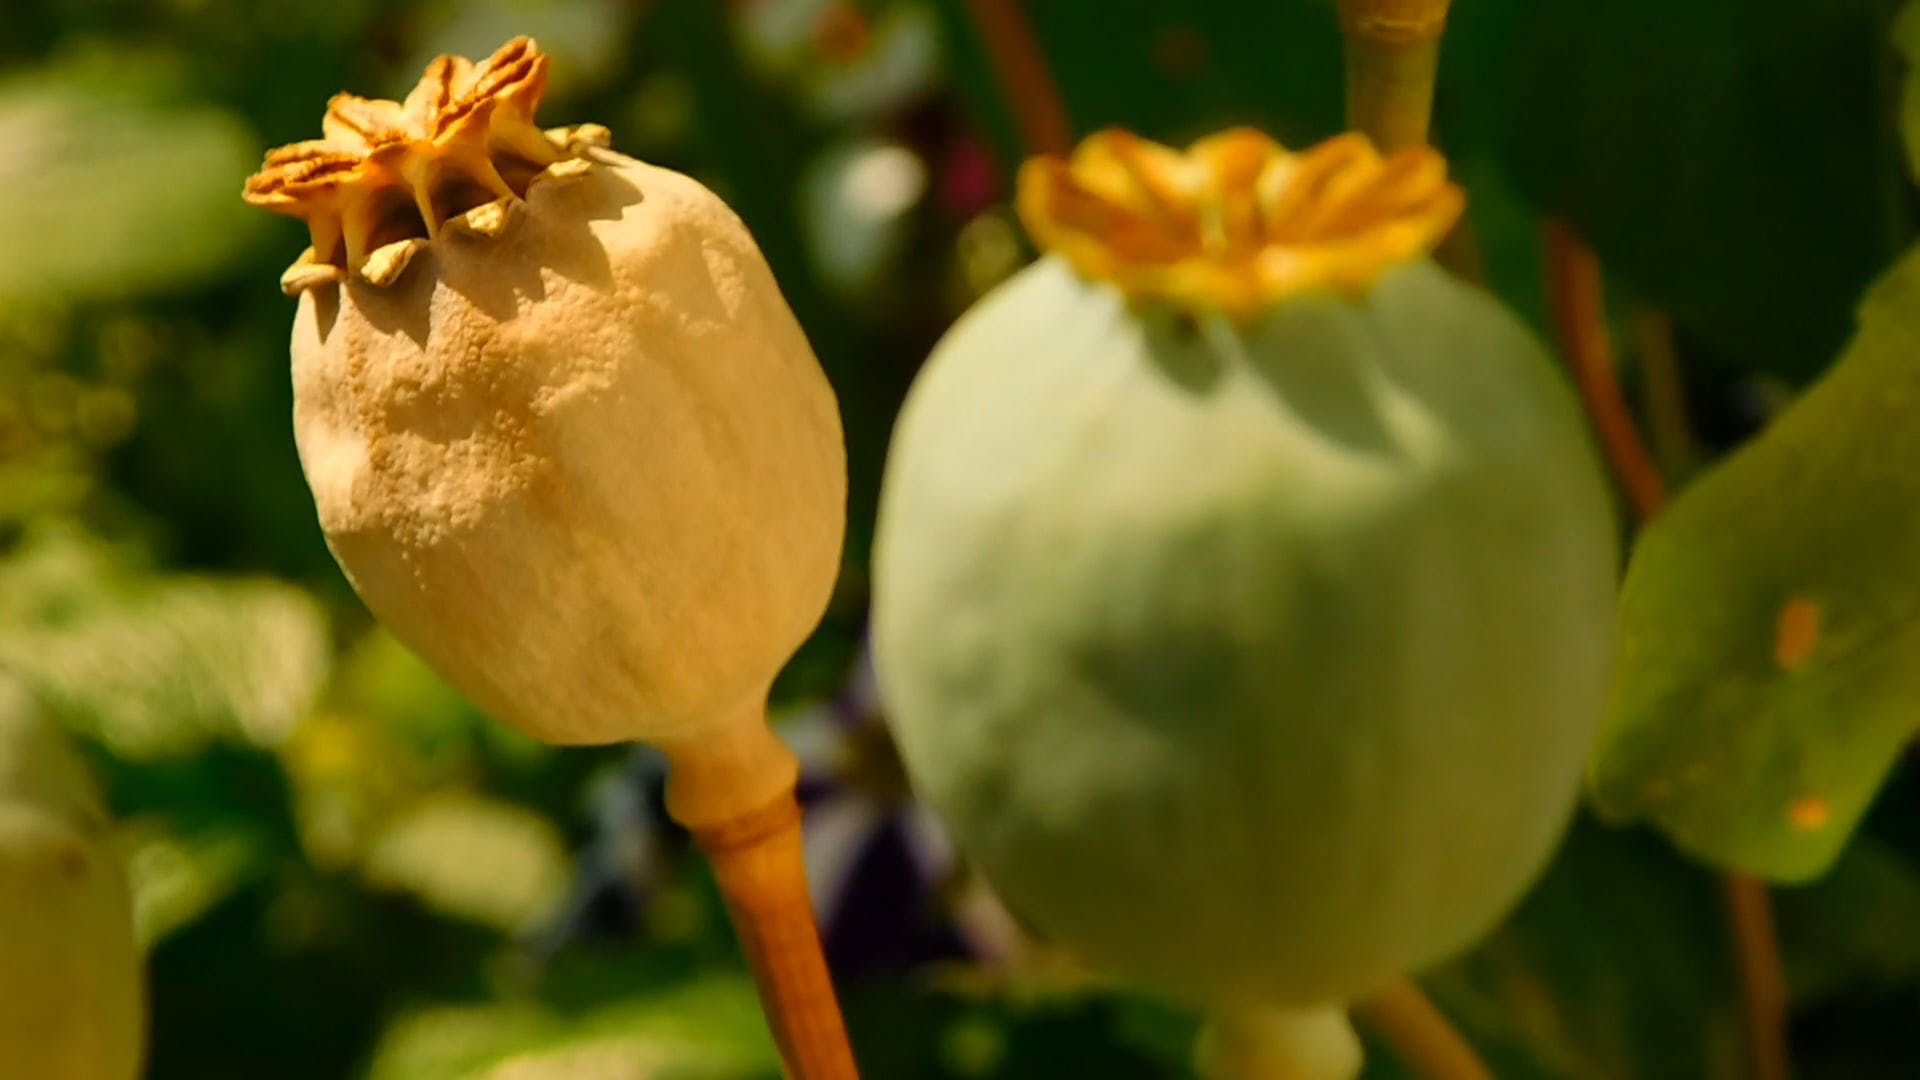 Close-up Poppy Seed Pods in a Garden